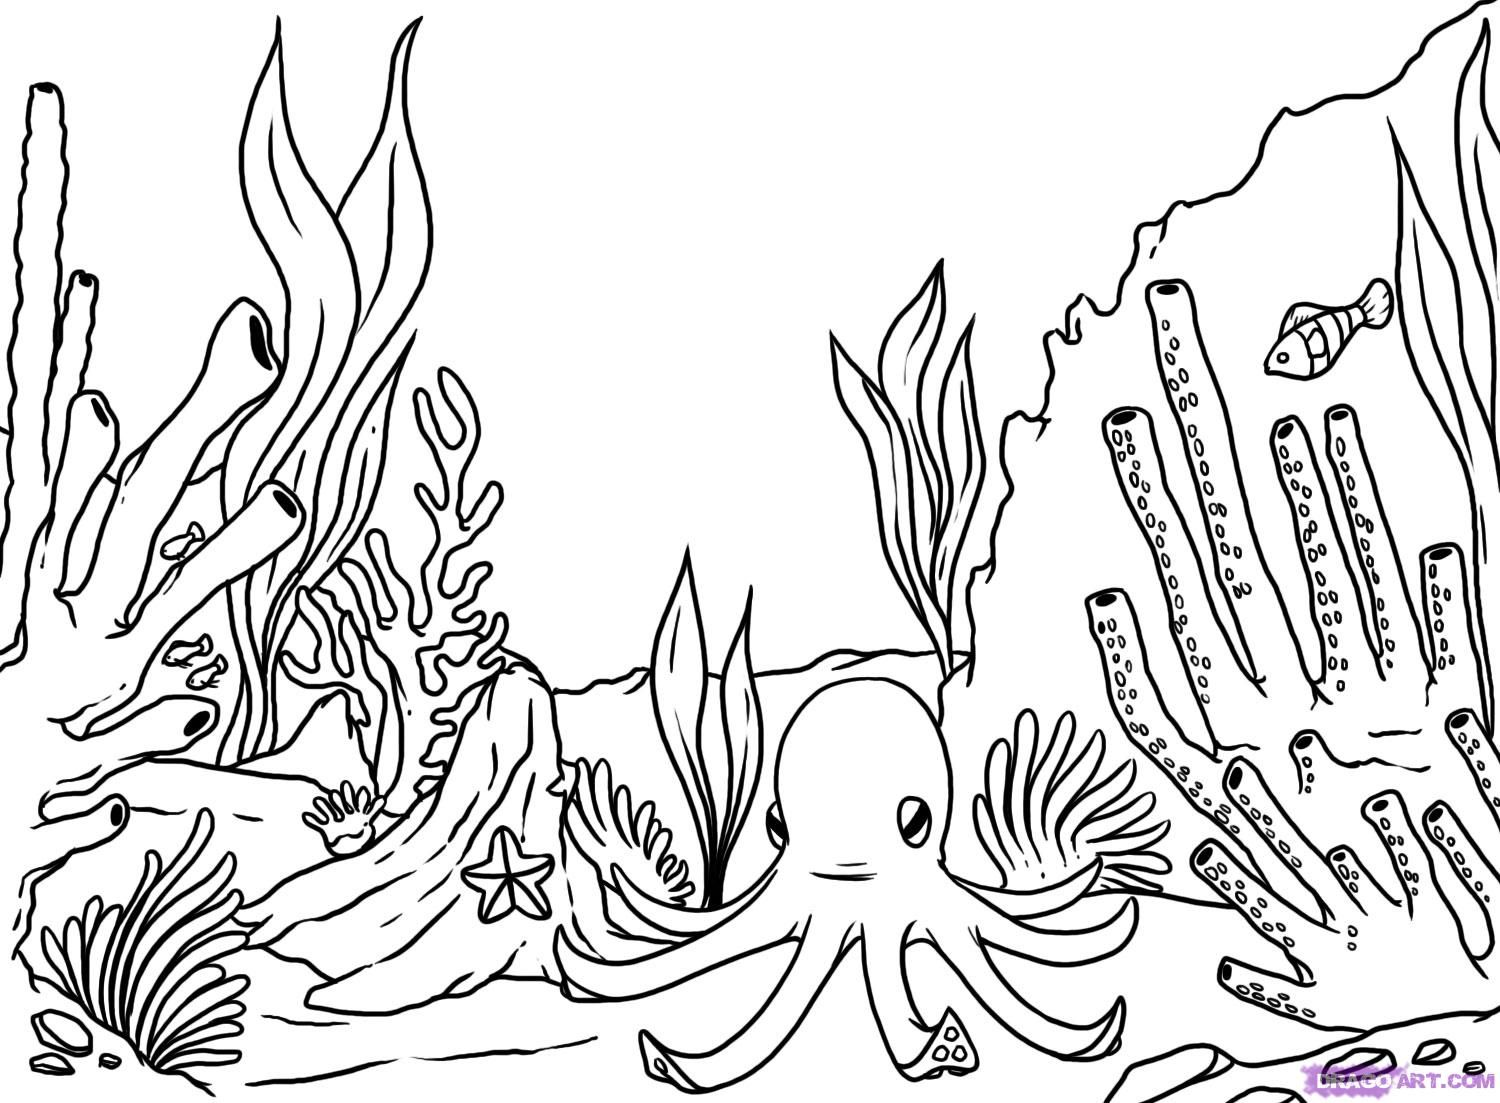 How To Draw A Coral Reef Step 8